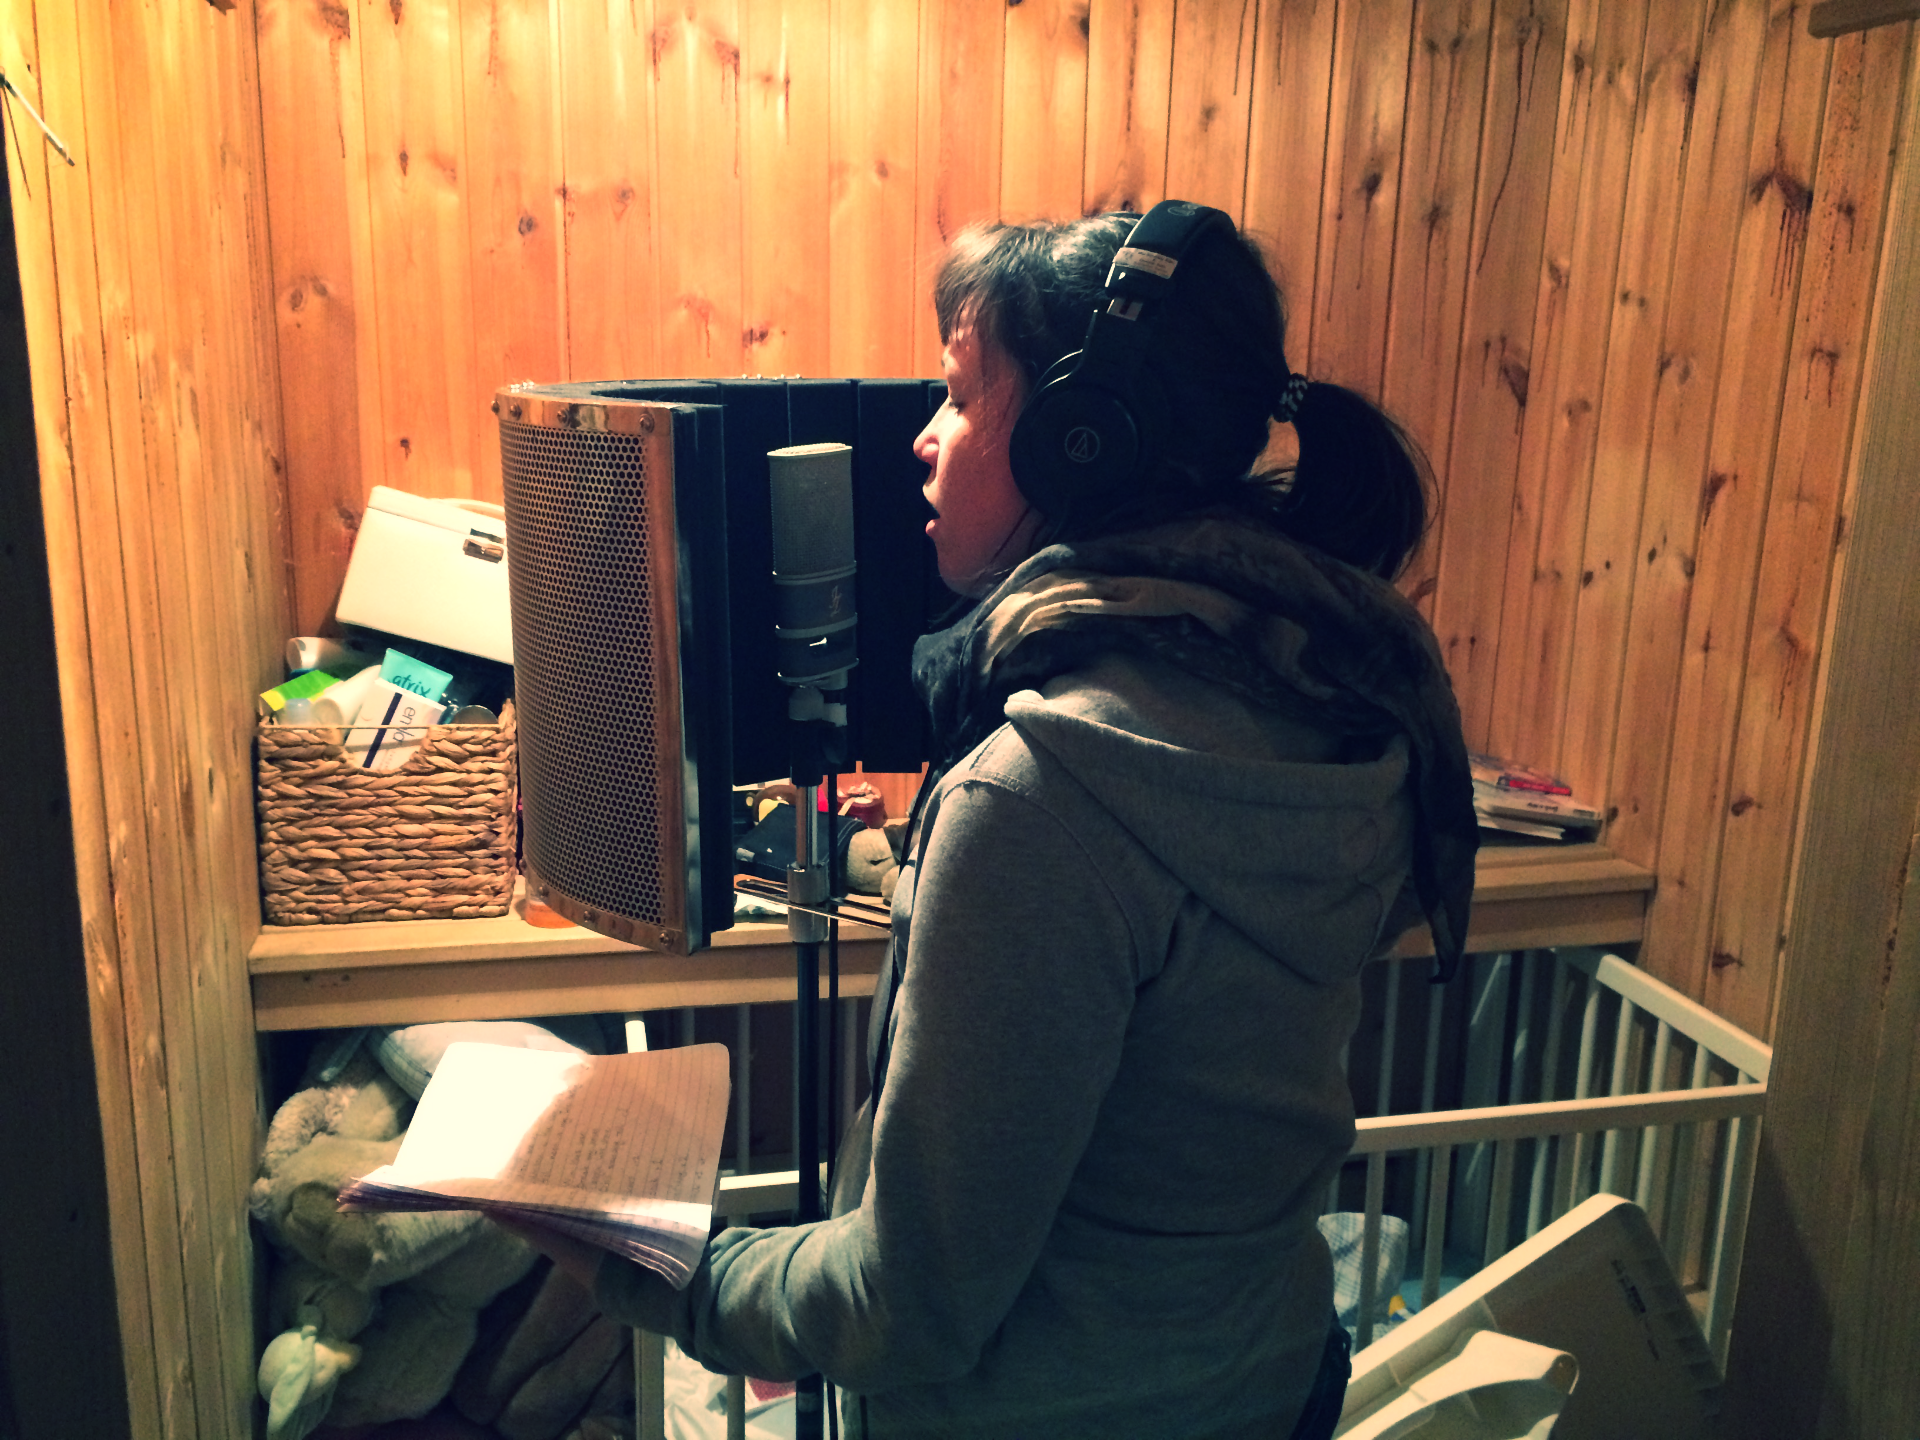 Recording song in a sauna